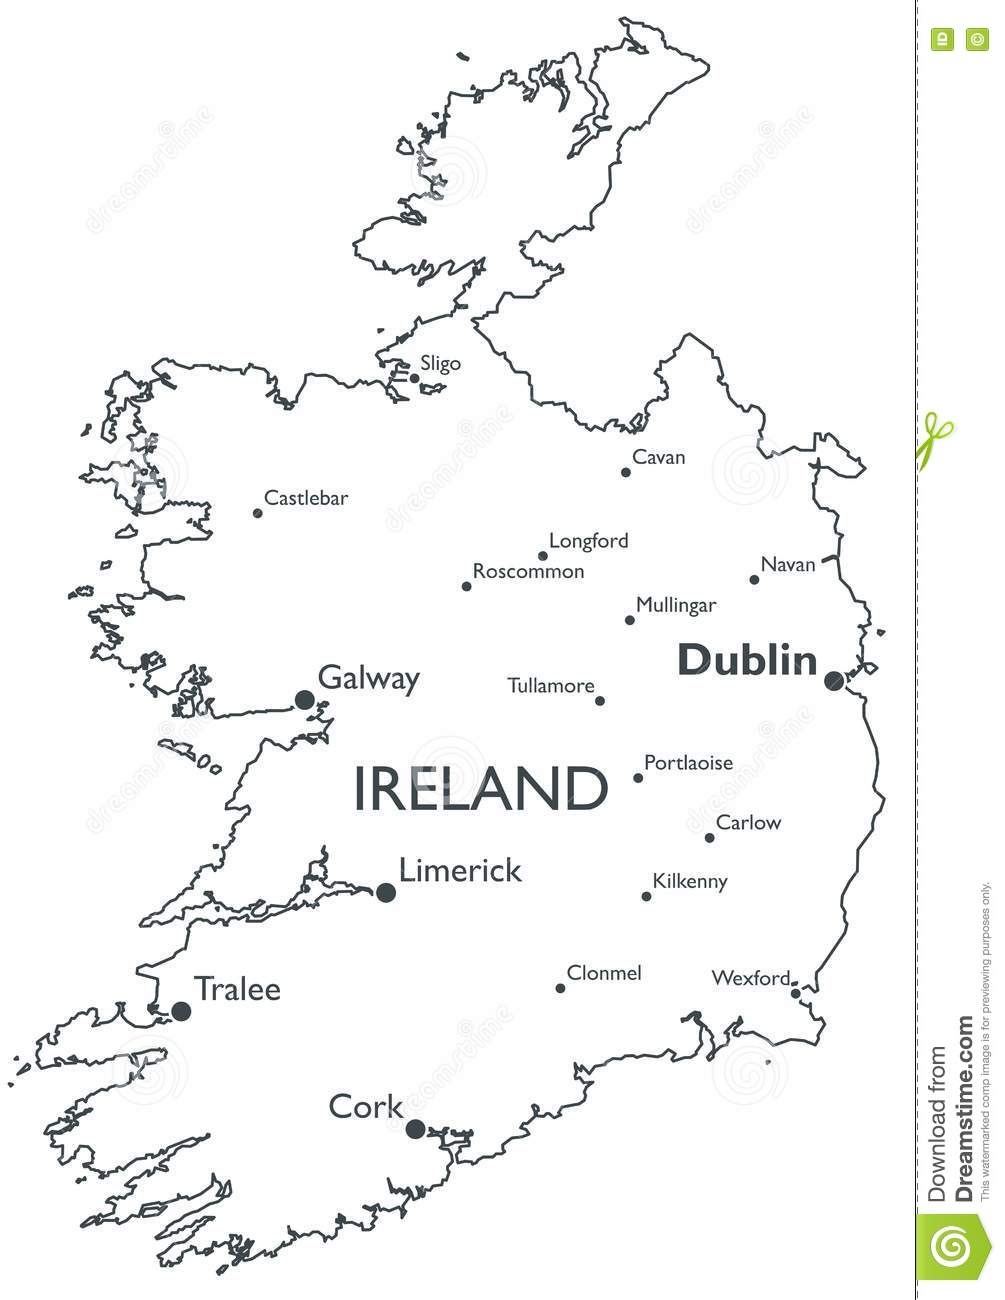 Map Of Ireland Vector.Vector Map Of Ireland Stock Vector Illustration Of White 81489052